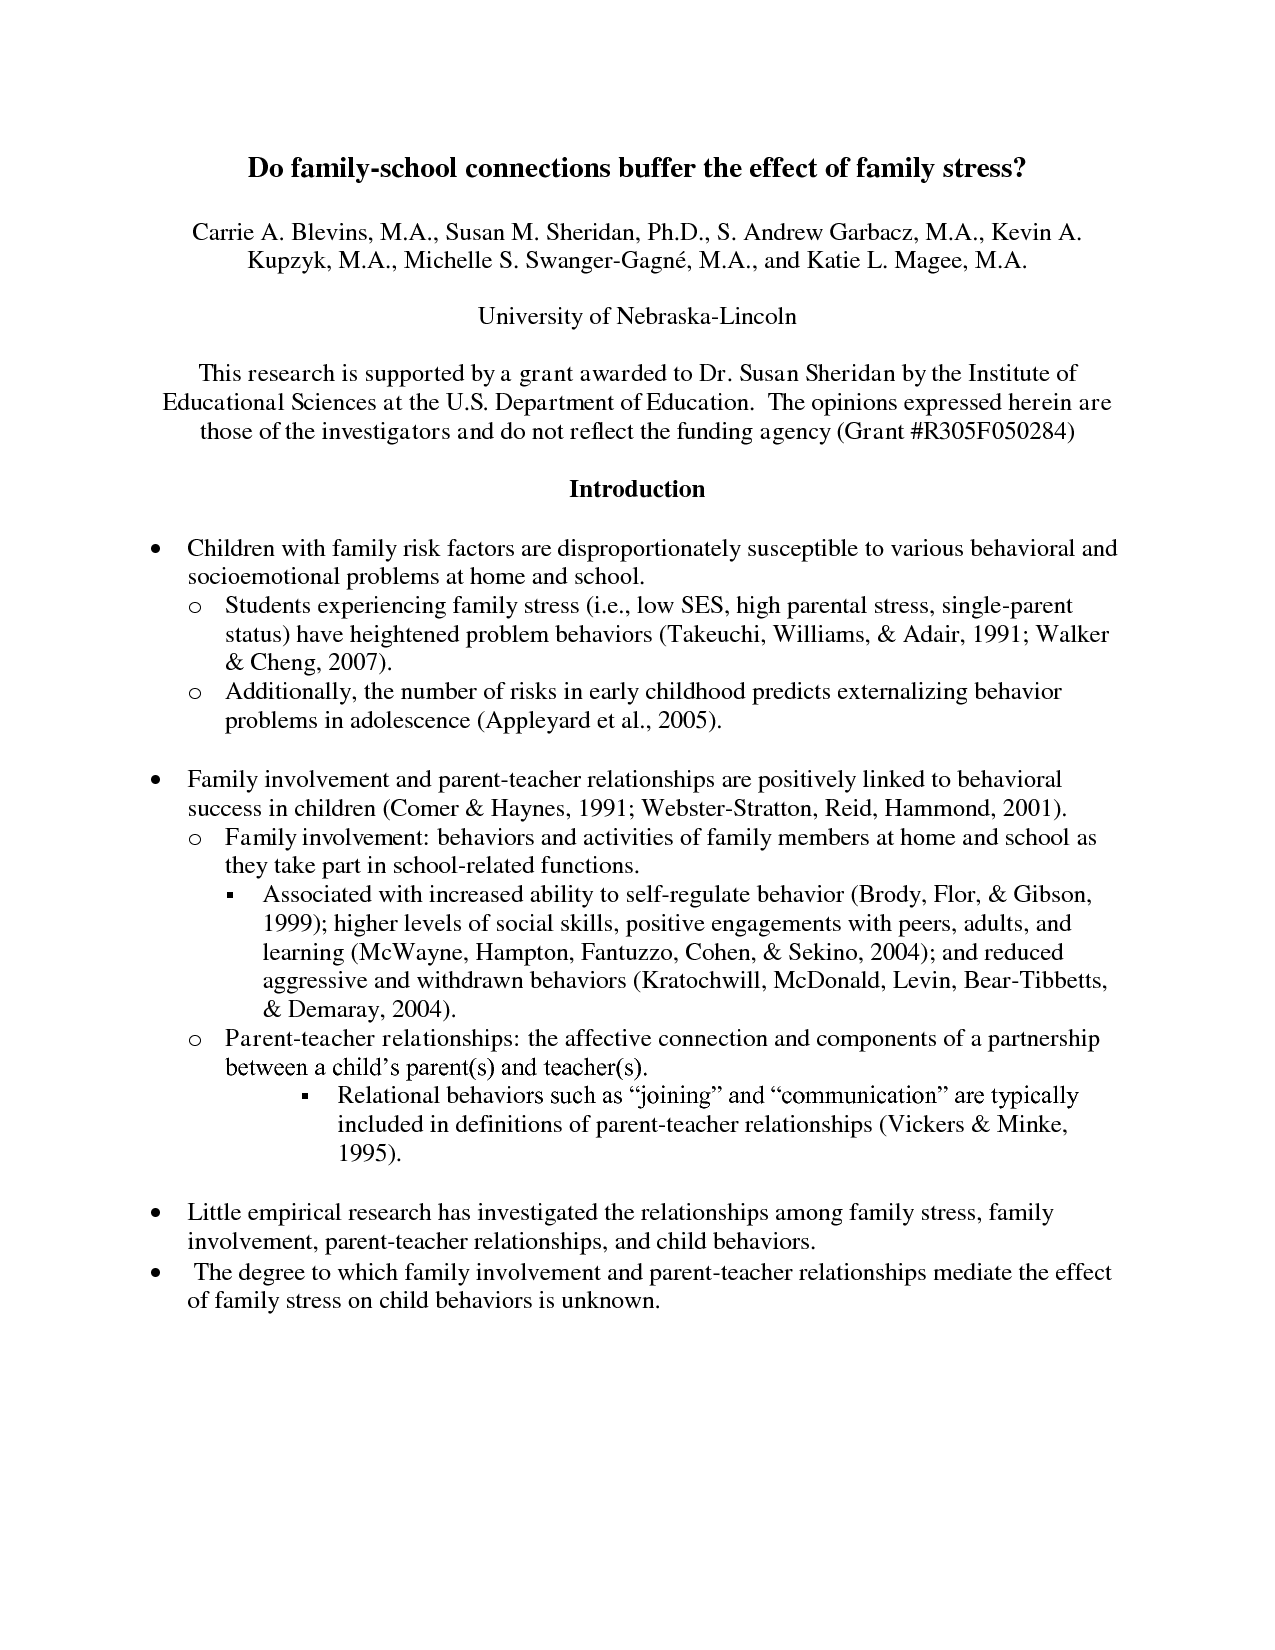 APA Literature Review Outline Example  Literature review outline